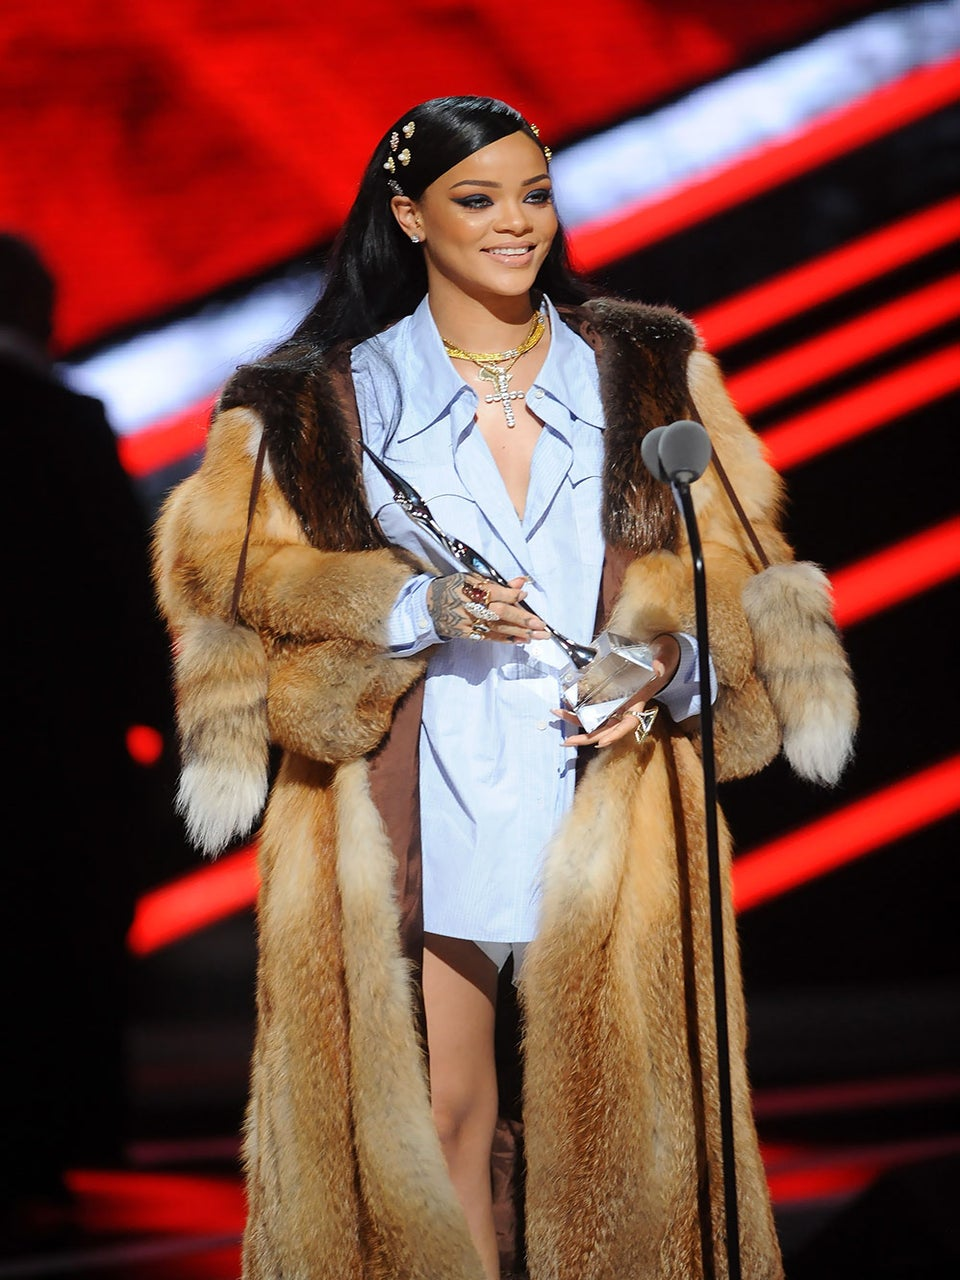 Rihanna Gives Moving Speech at 'Black Girls Rock': 'The Only Thing That's Kept Me Going is Being Myself'